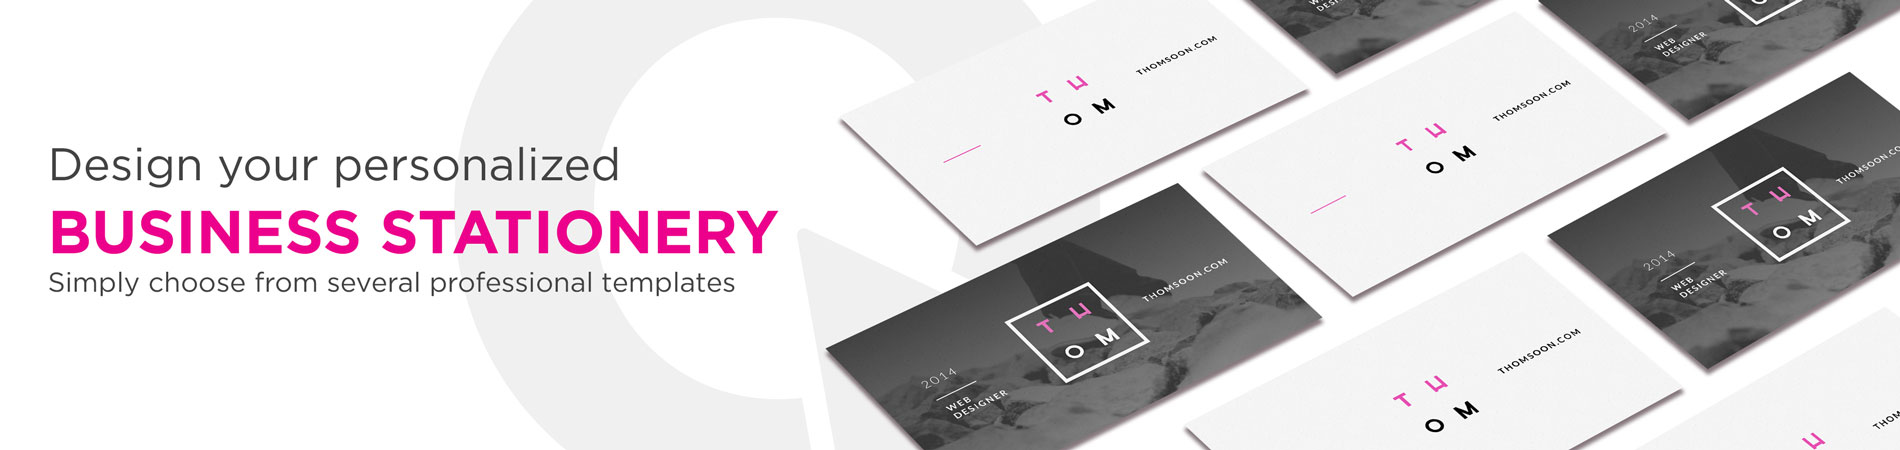 Design-Your-Business-Stationary